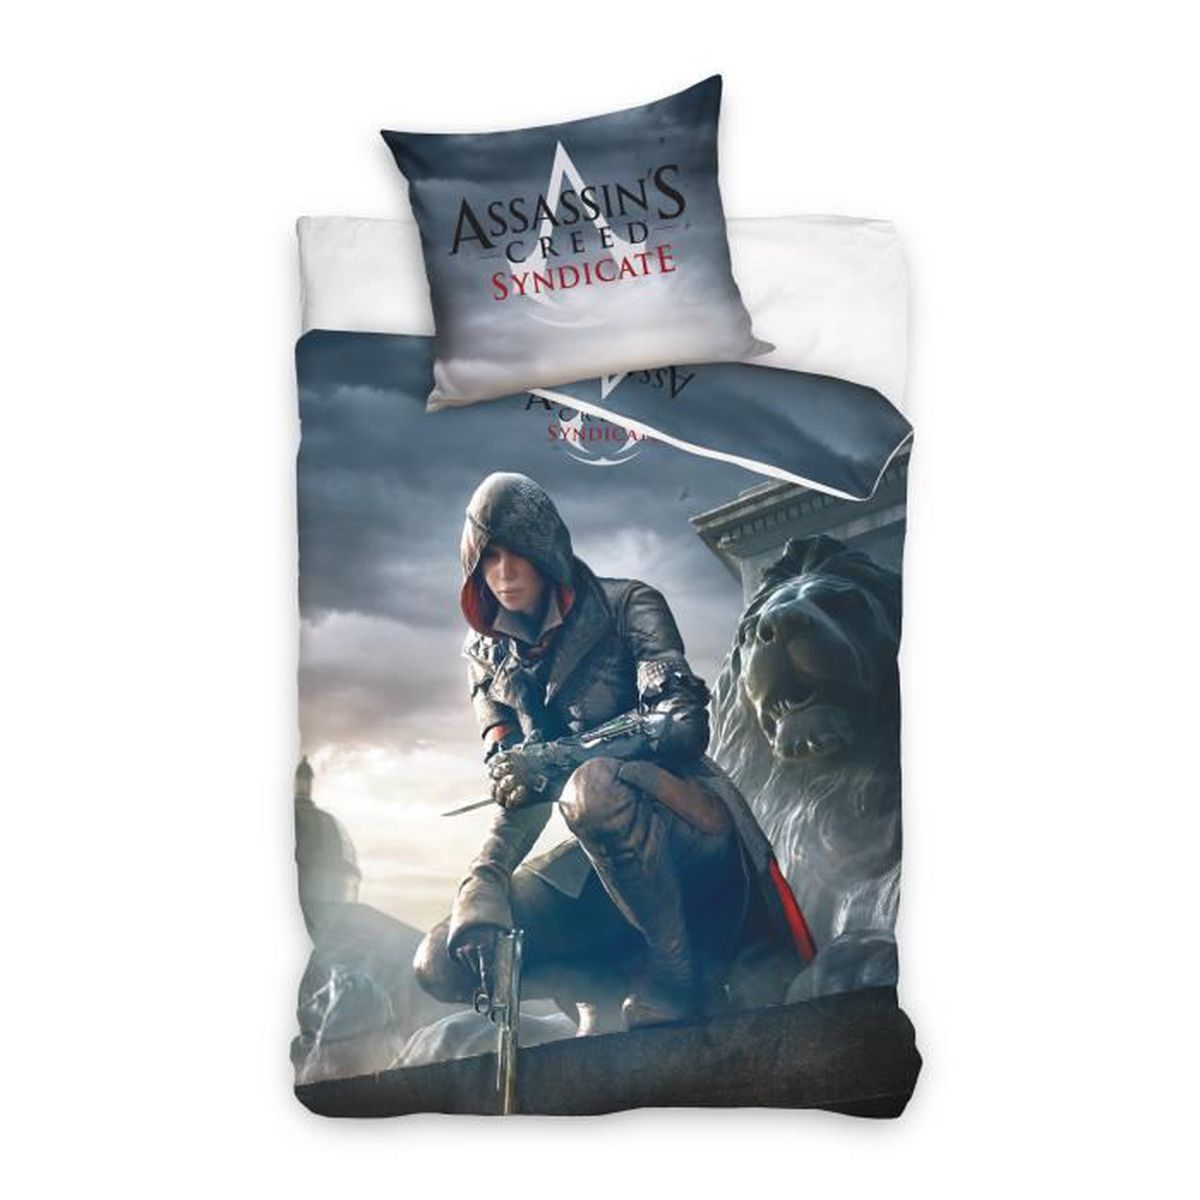 assassin 39 s creed syndicate parure de lit r versible 100 coton housse de couette 160x200 cm. Black Bedroom Furniture Sets. Home Design Ideas